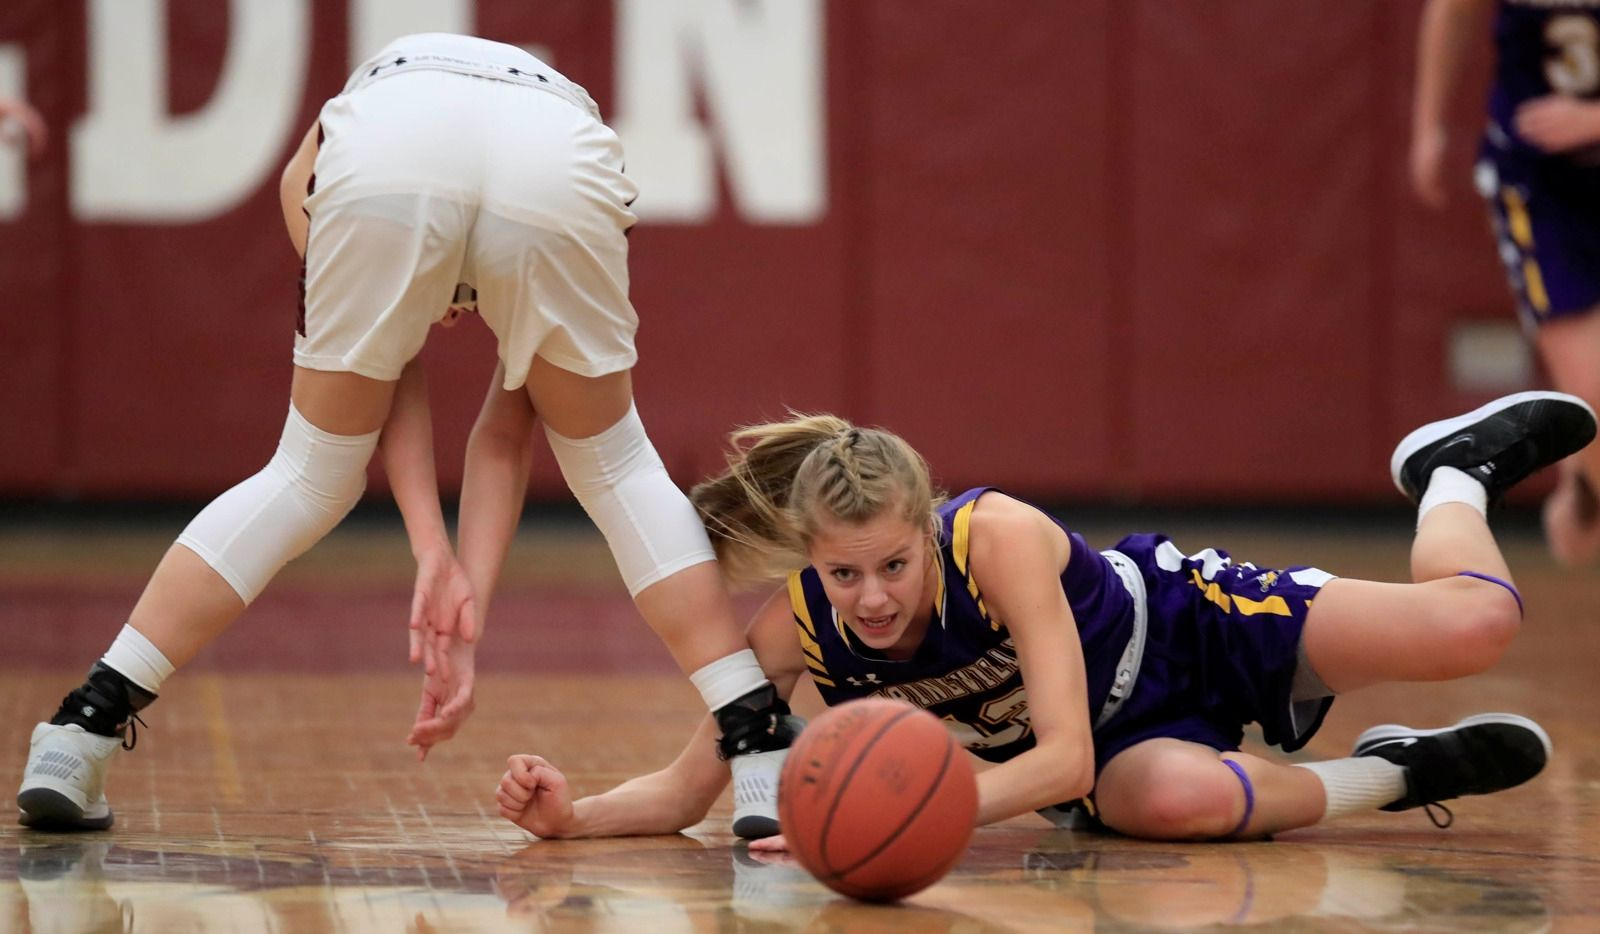 Springville's Kelsey Zabawa chases down a loose ball against Eden during the first half at Eden High School on Jan. 7, 2019.